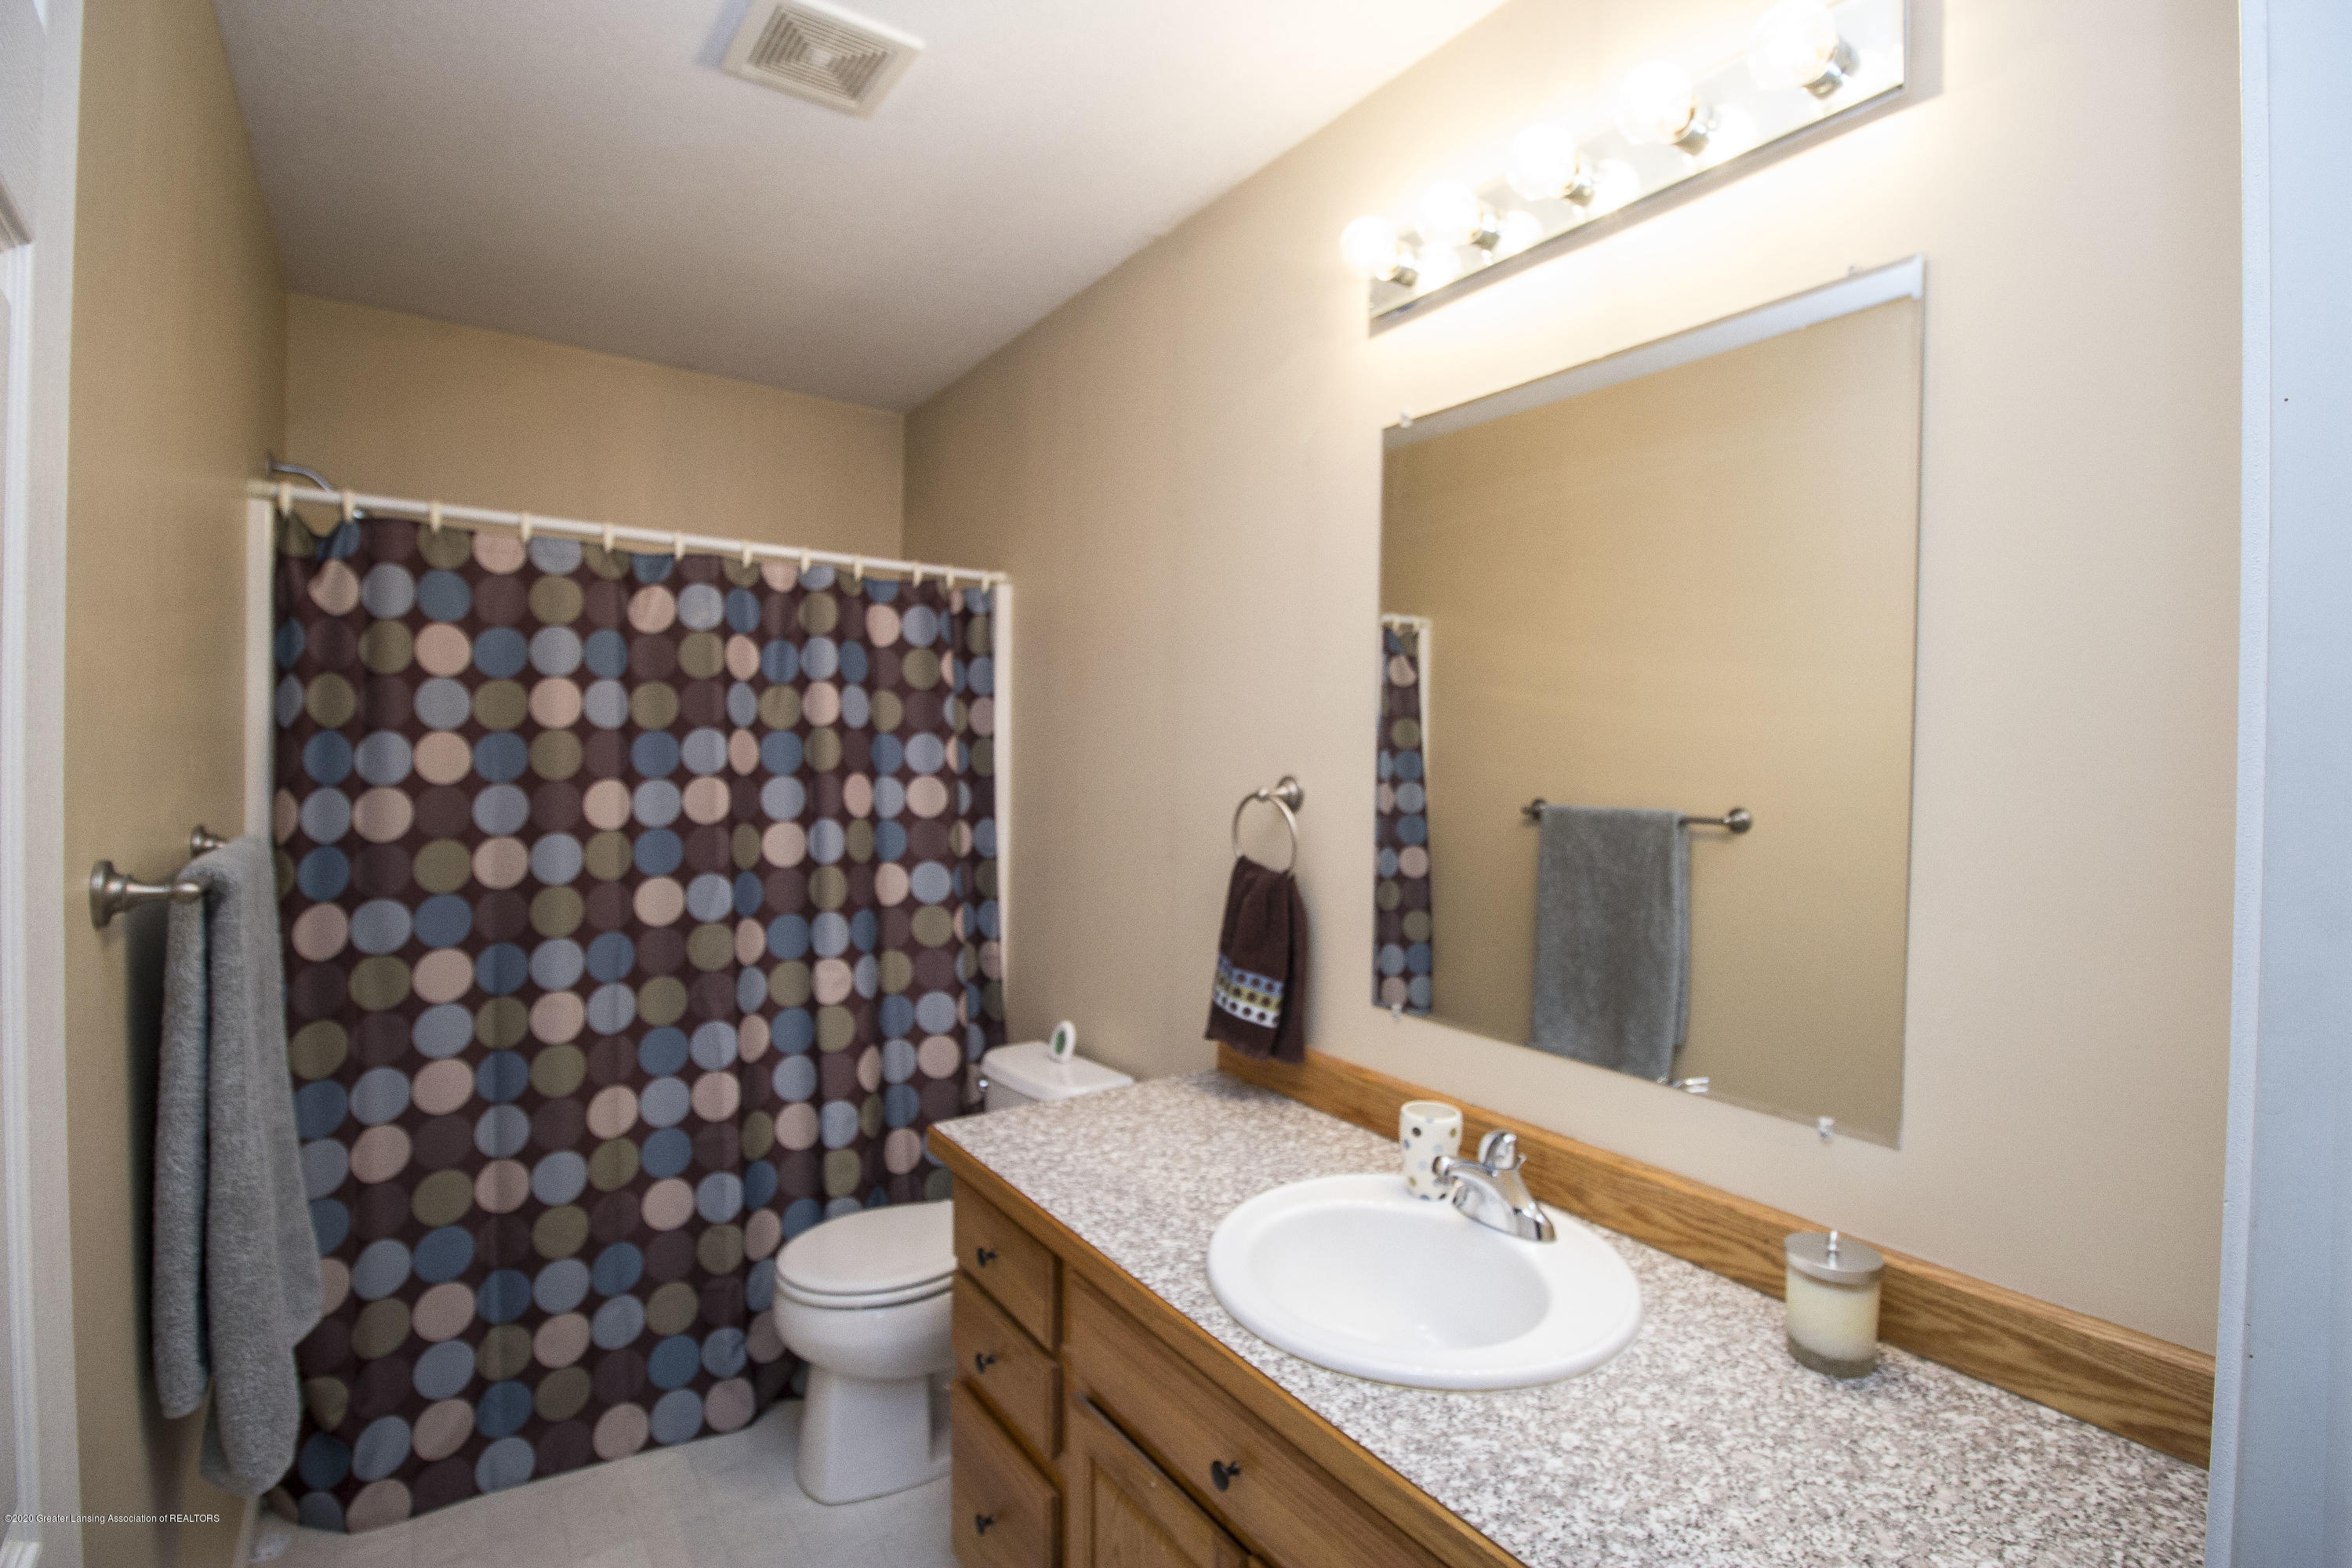 5498 Caplina Dr - Main bath (2) - 20